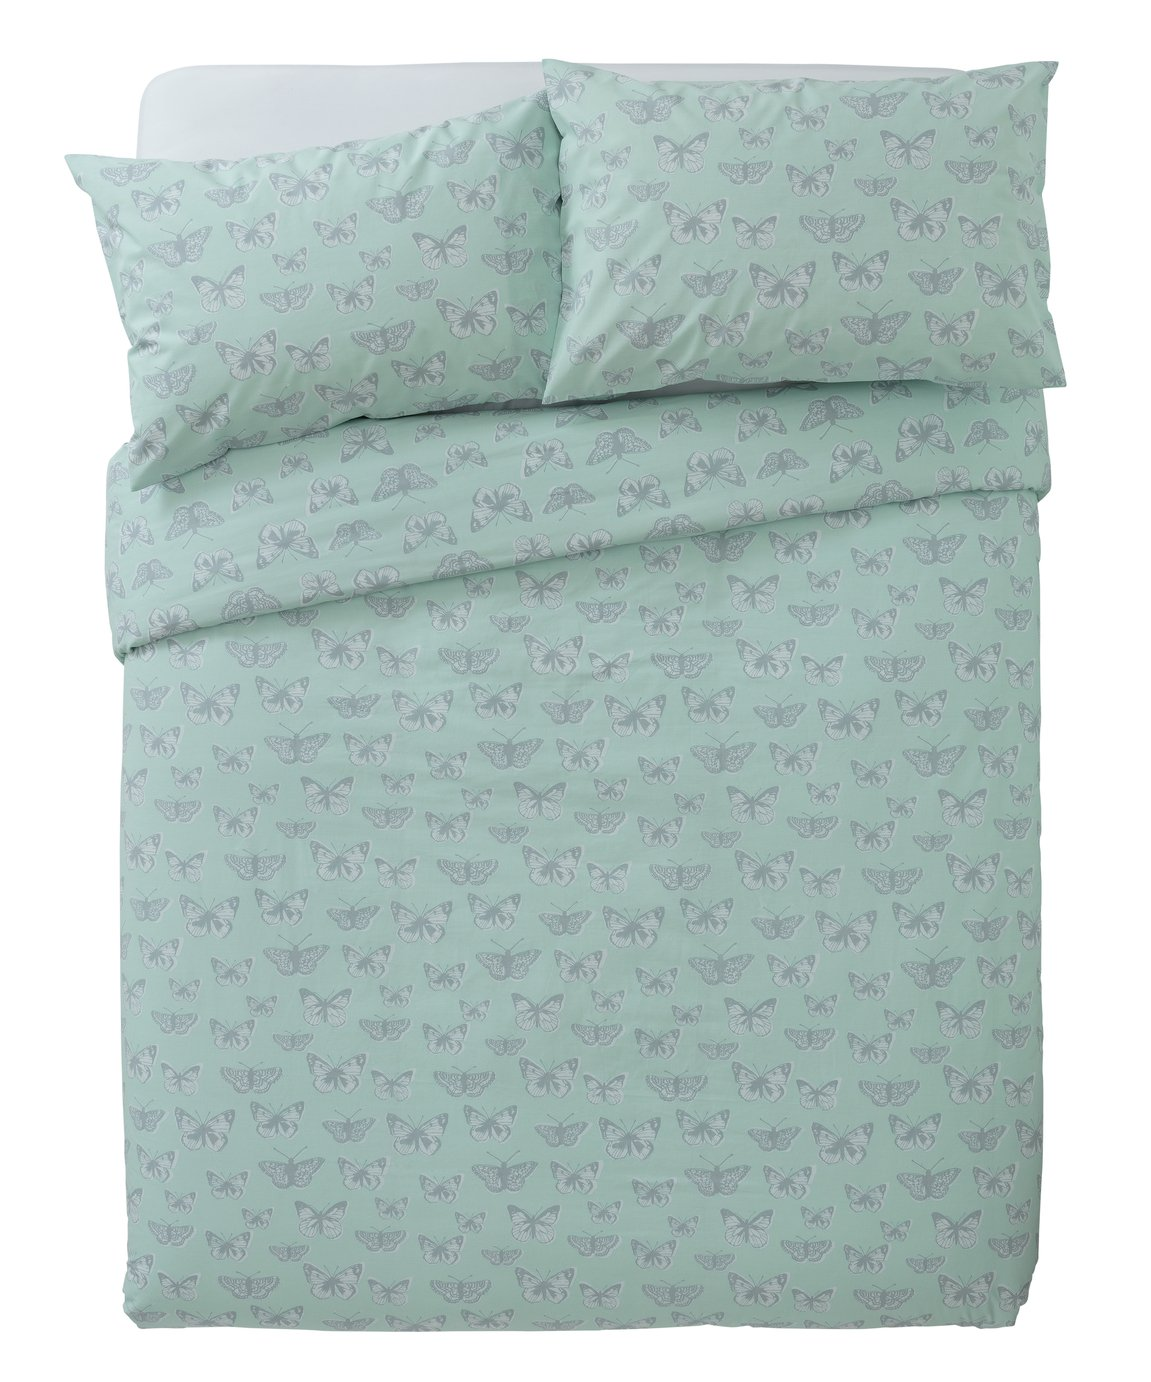 Argos Home Botanical Garden Butterfly Bedding Set - Kingsize